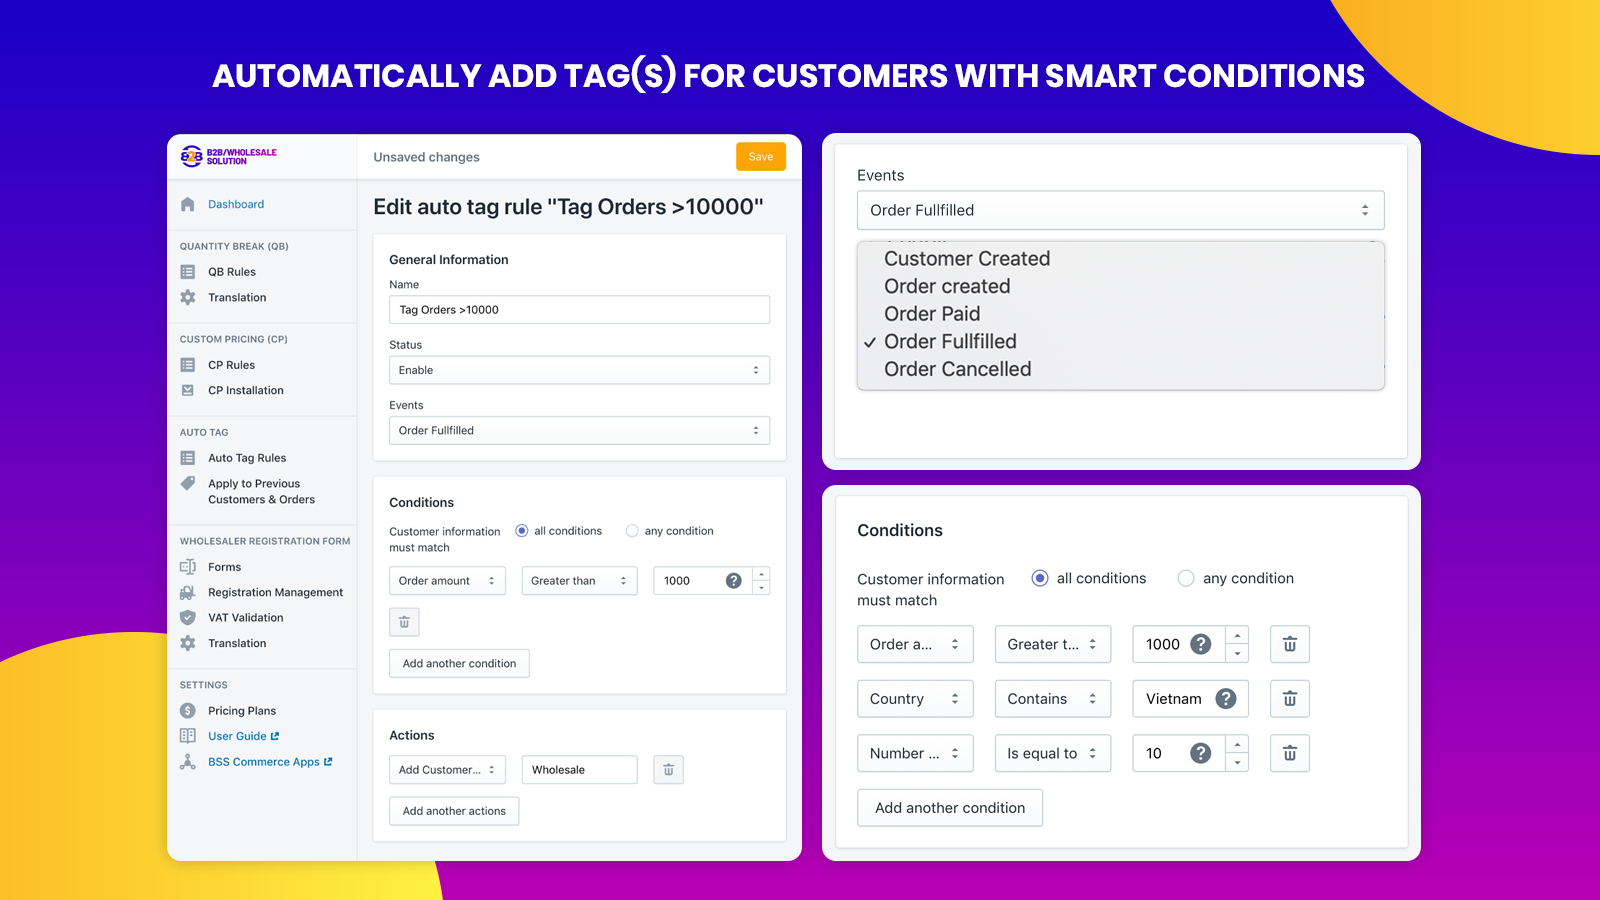 Auto Tag Customers Based on Conditions